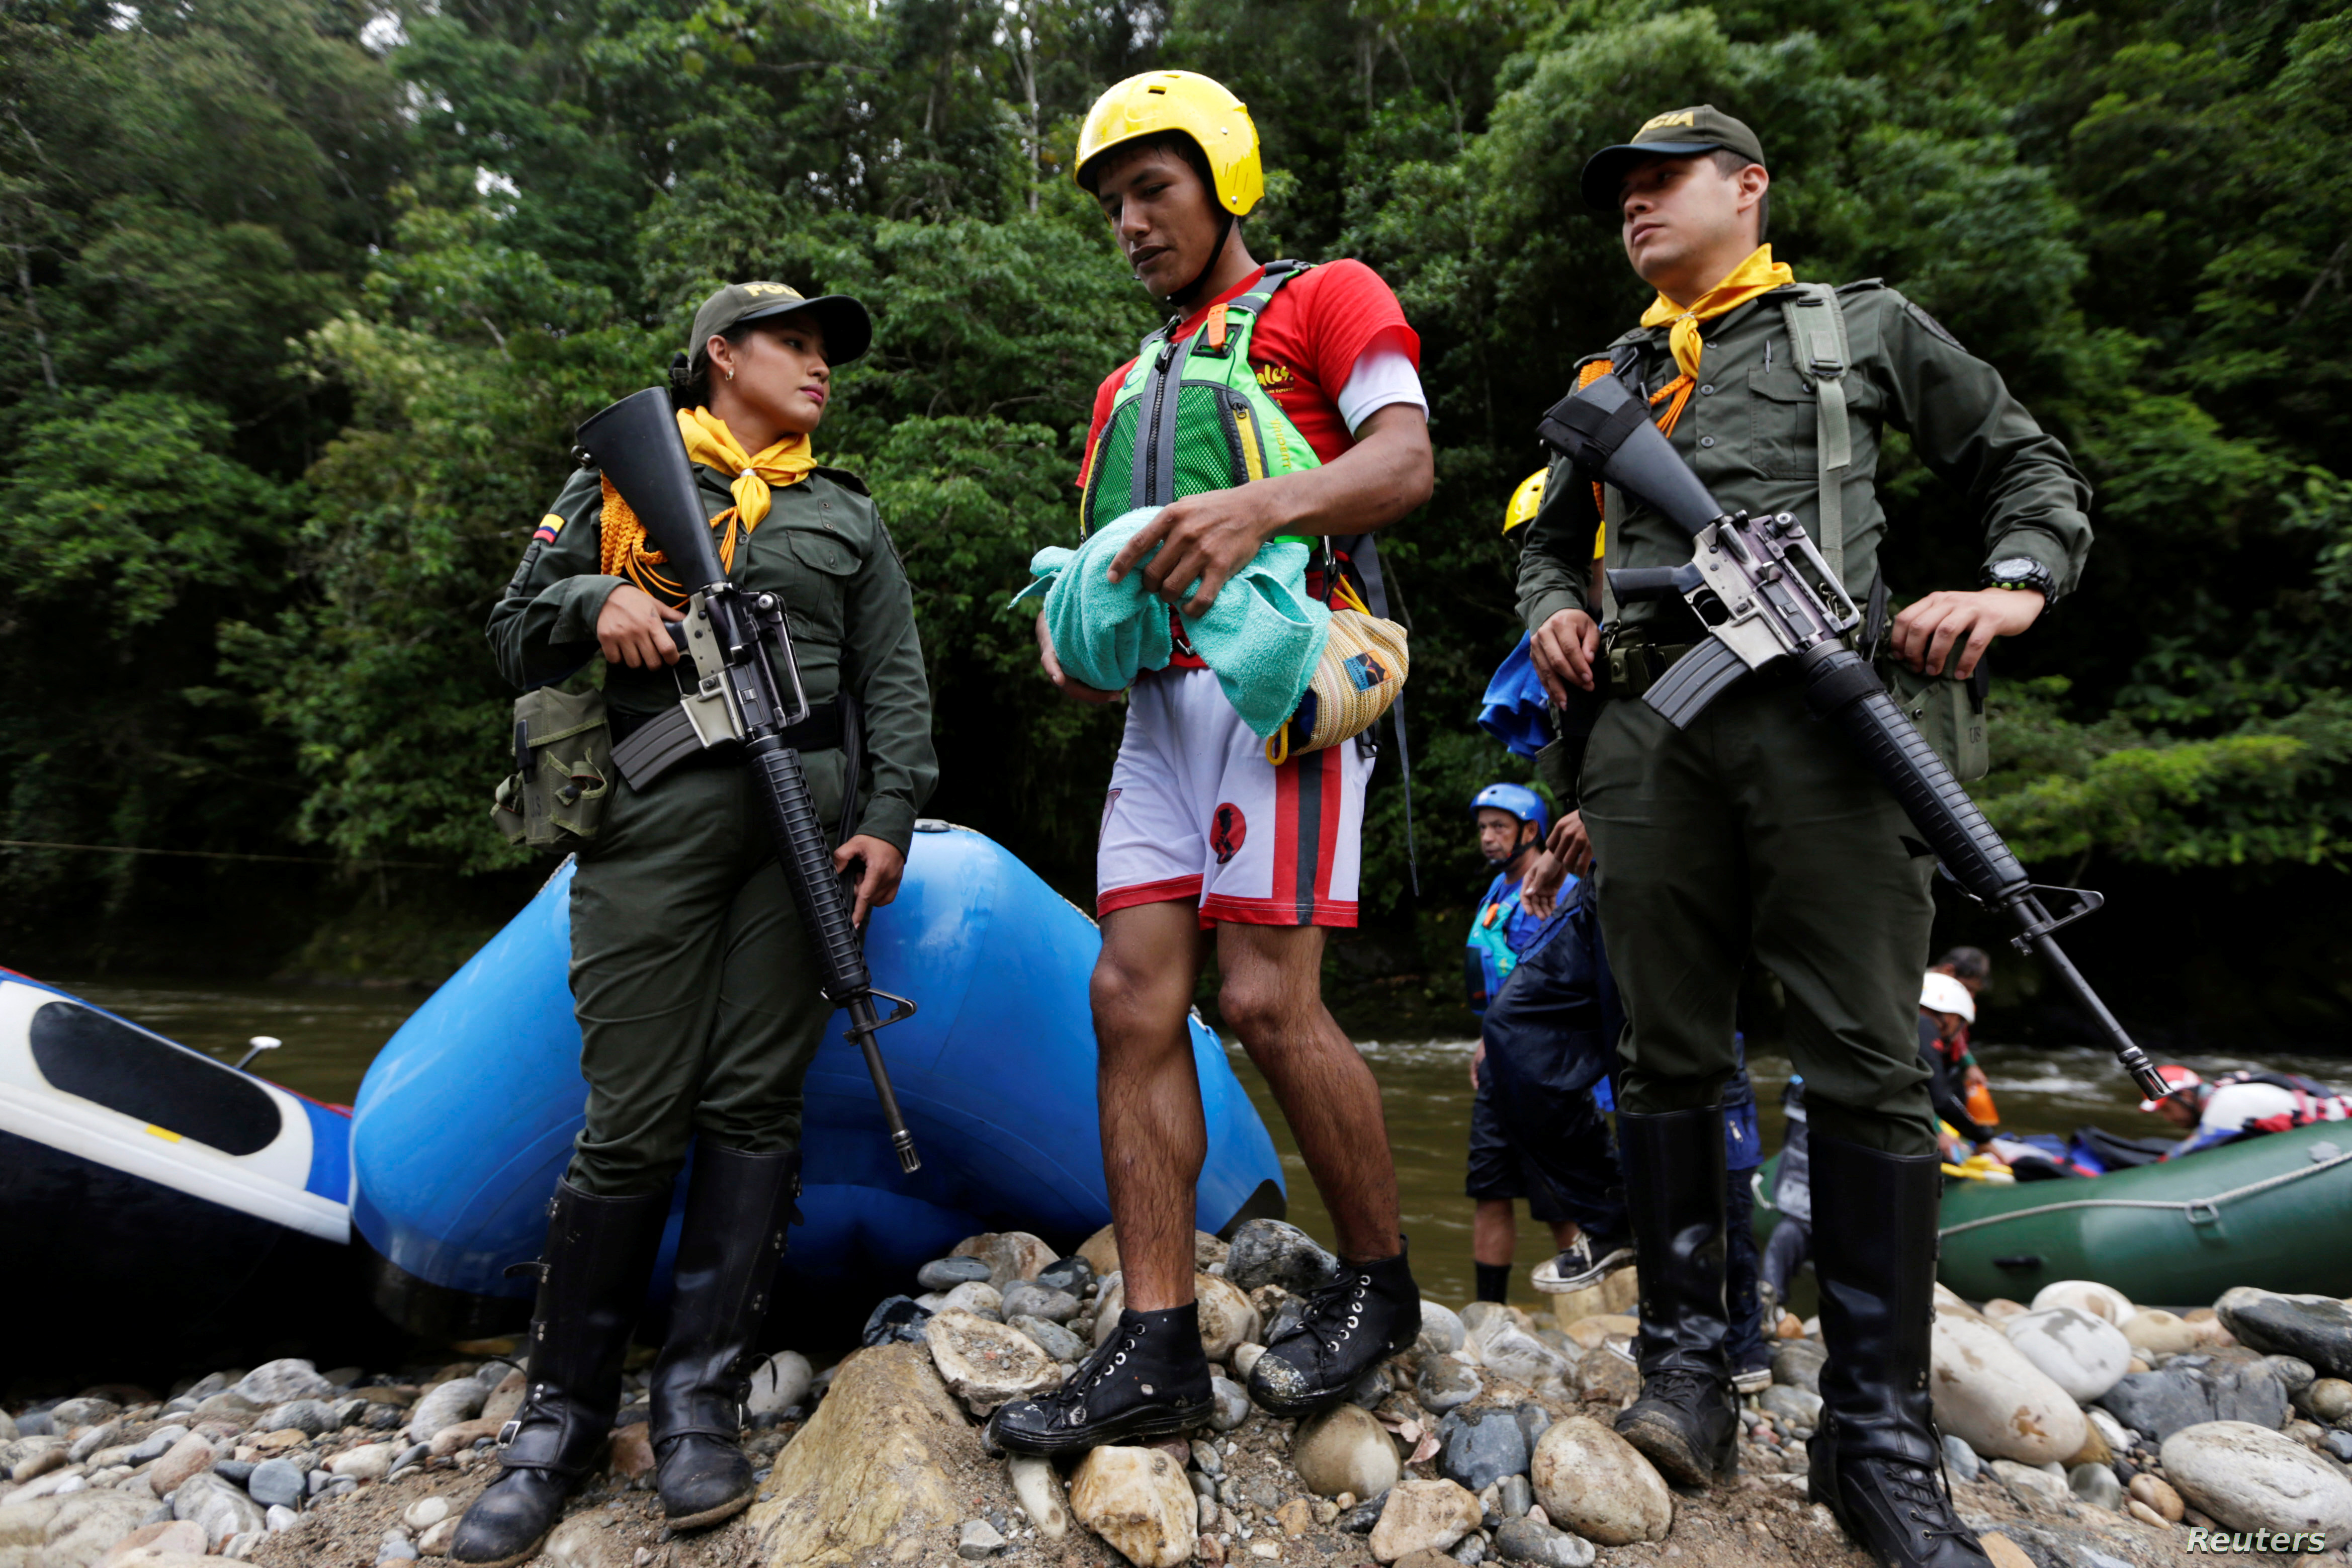 An ex-rebel of the FARC and now rafting instructor leaves his raft between members of the police in Miravalle, Colombia, Nov. 9, 2018.